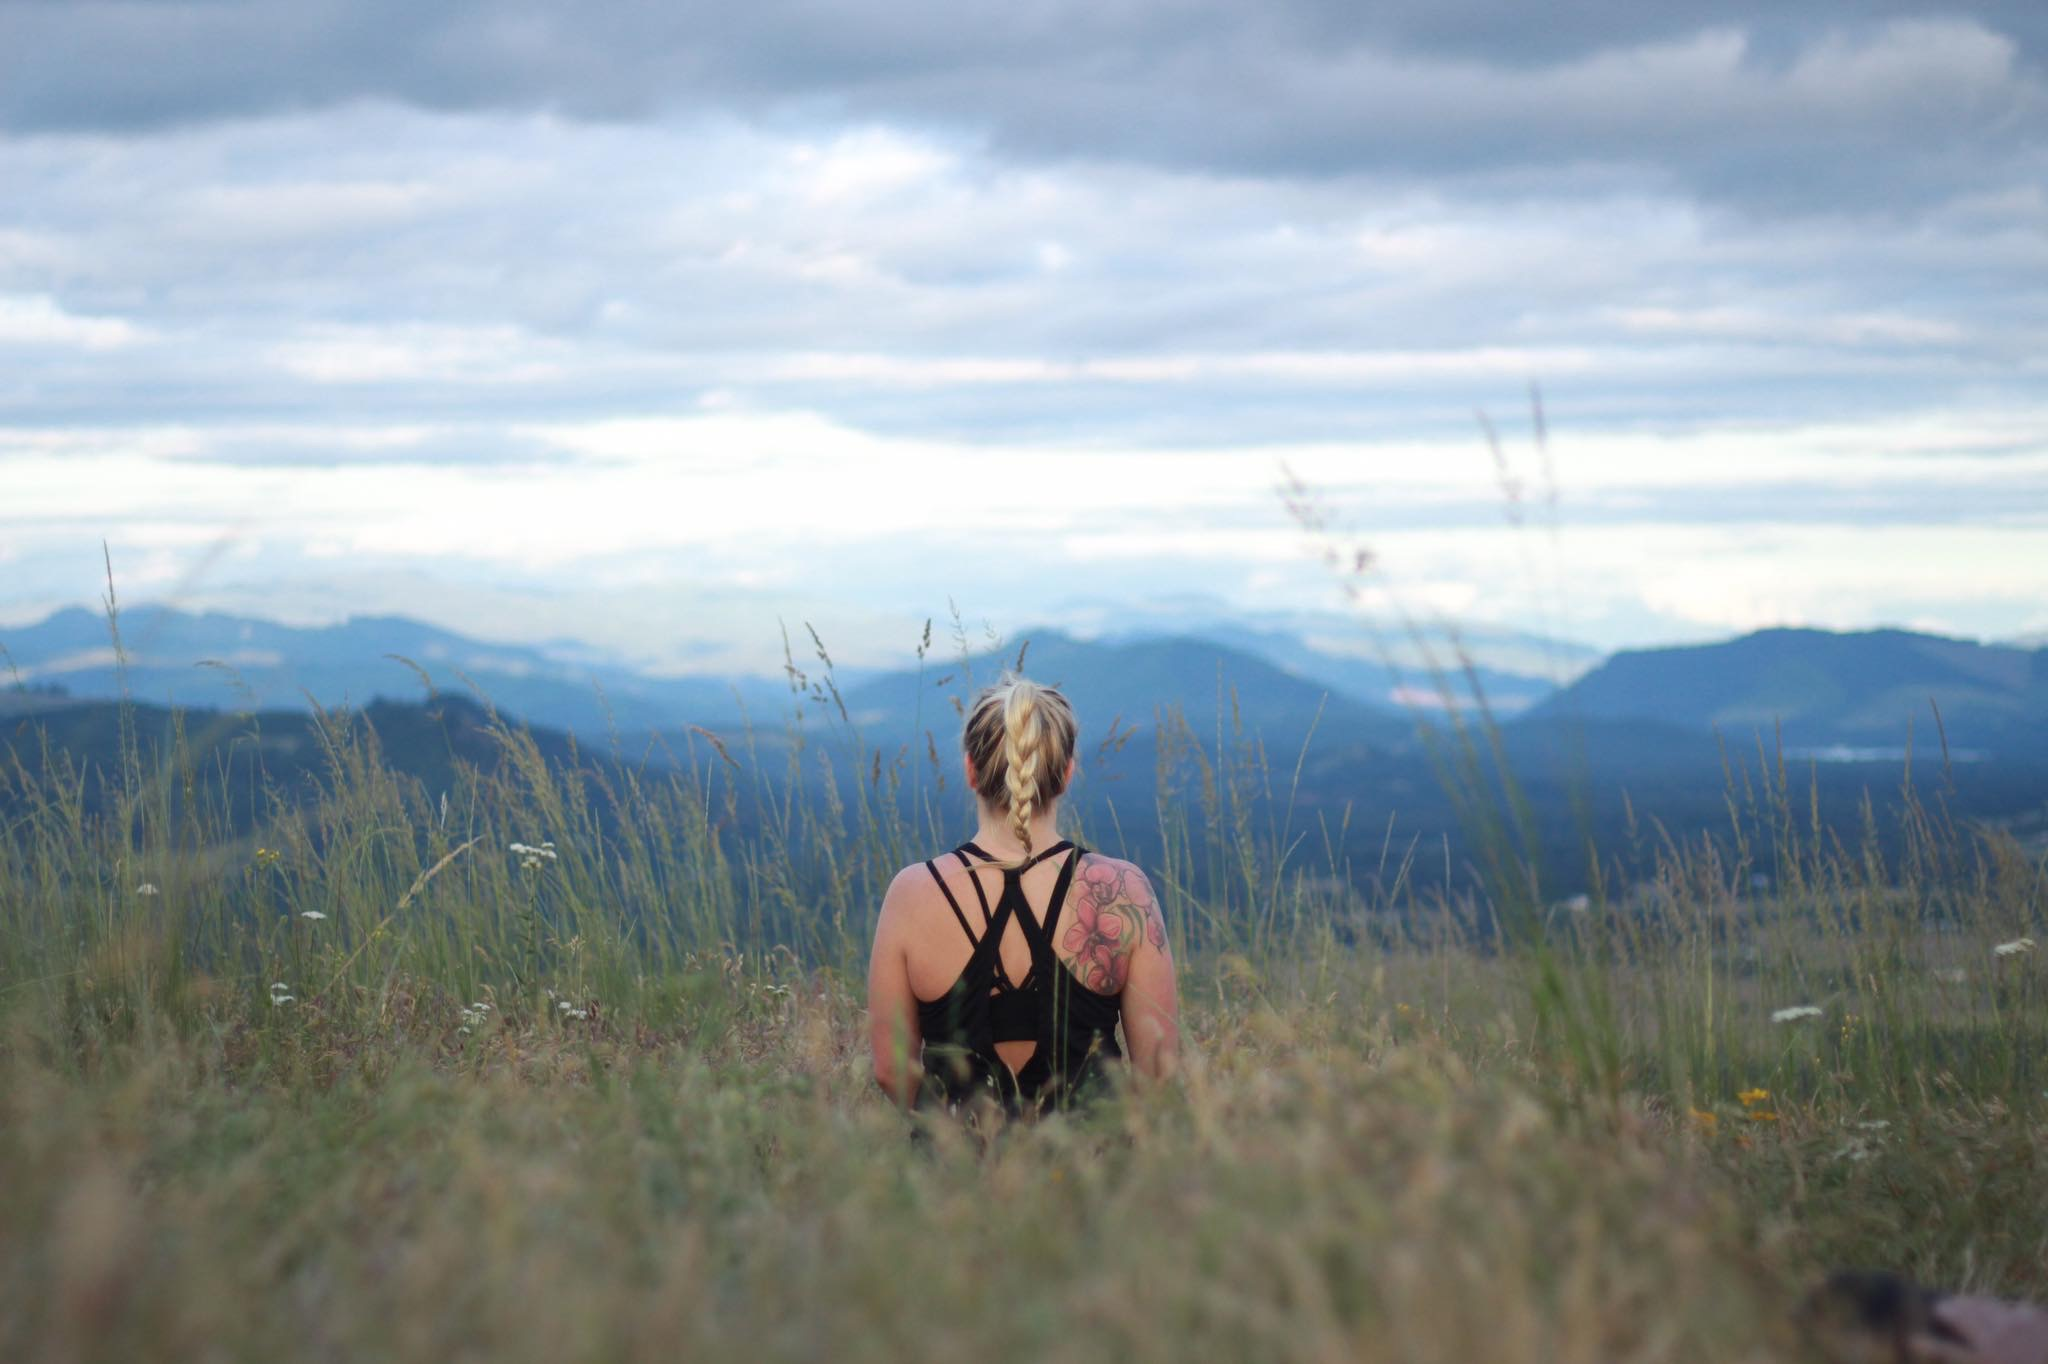 Brittany gazes at all the beauty nature provides on Mt. Pisgah in Eugen, OR.